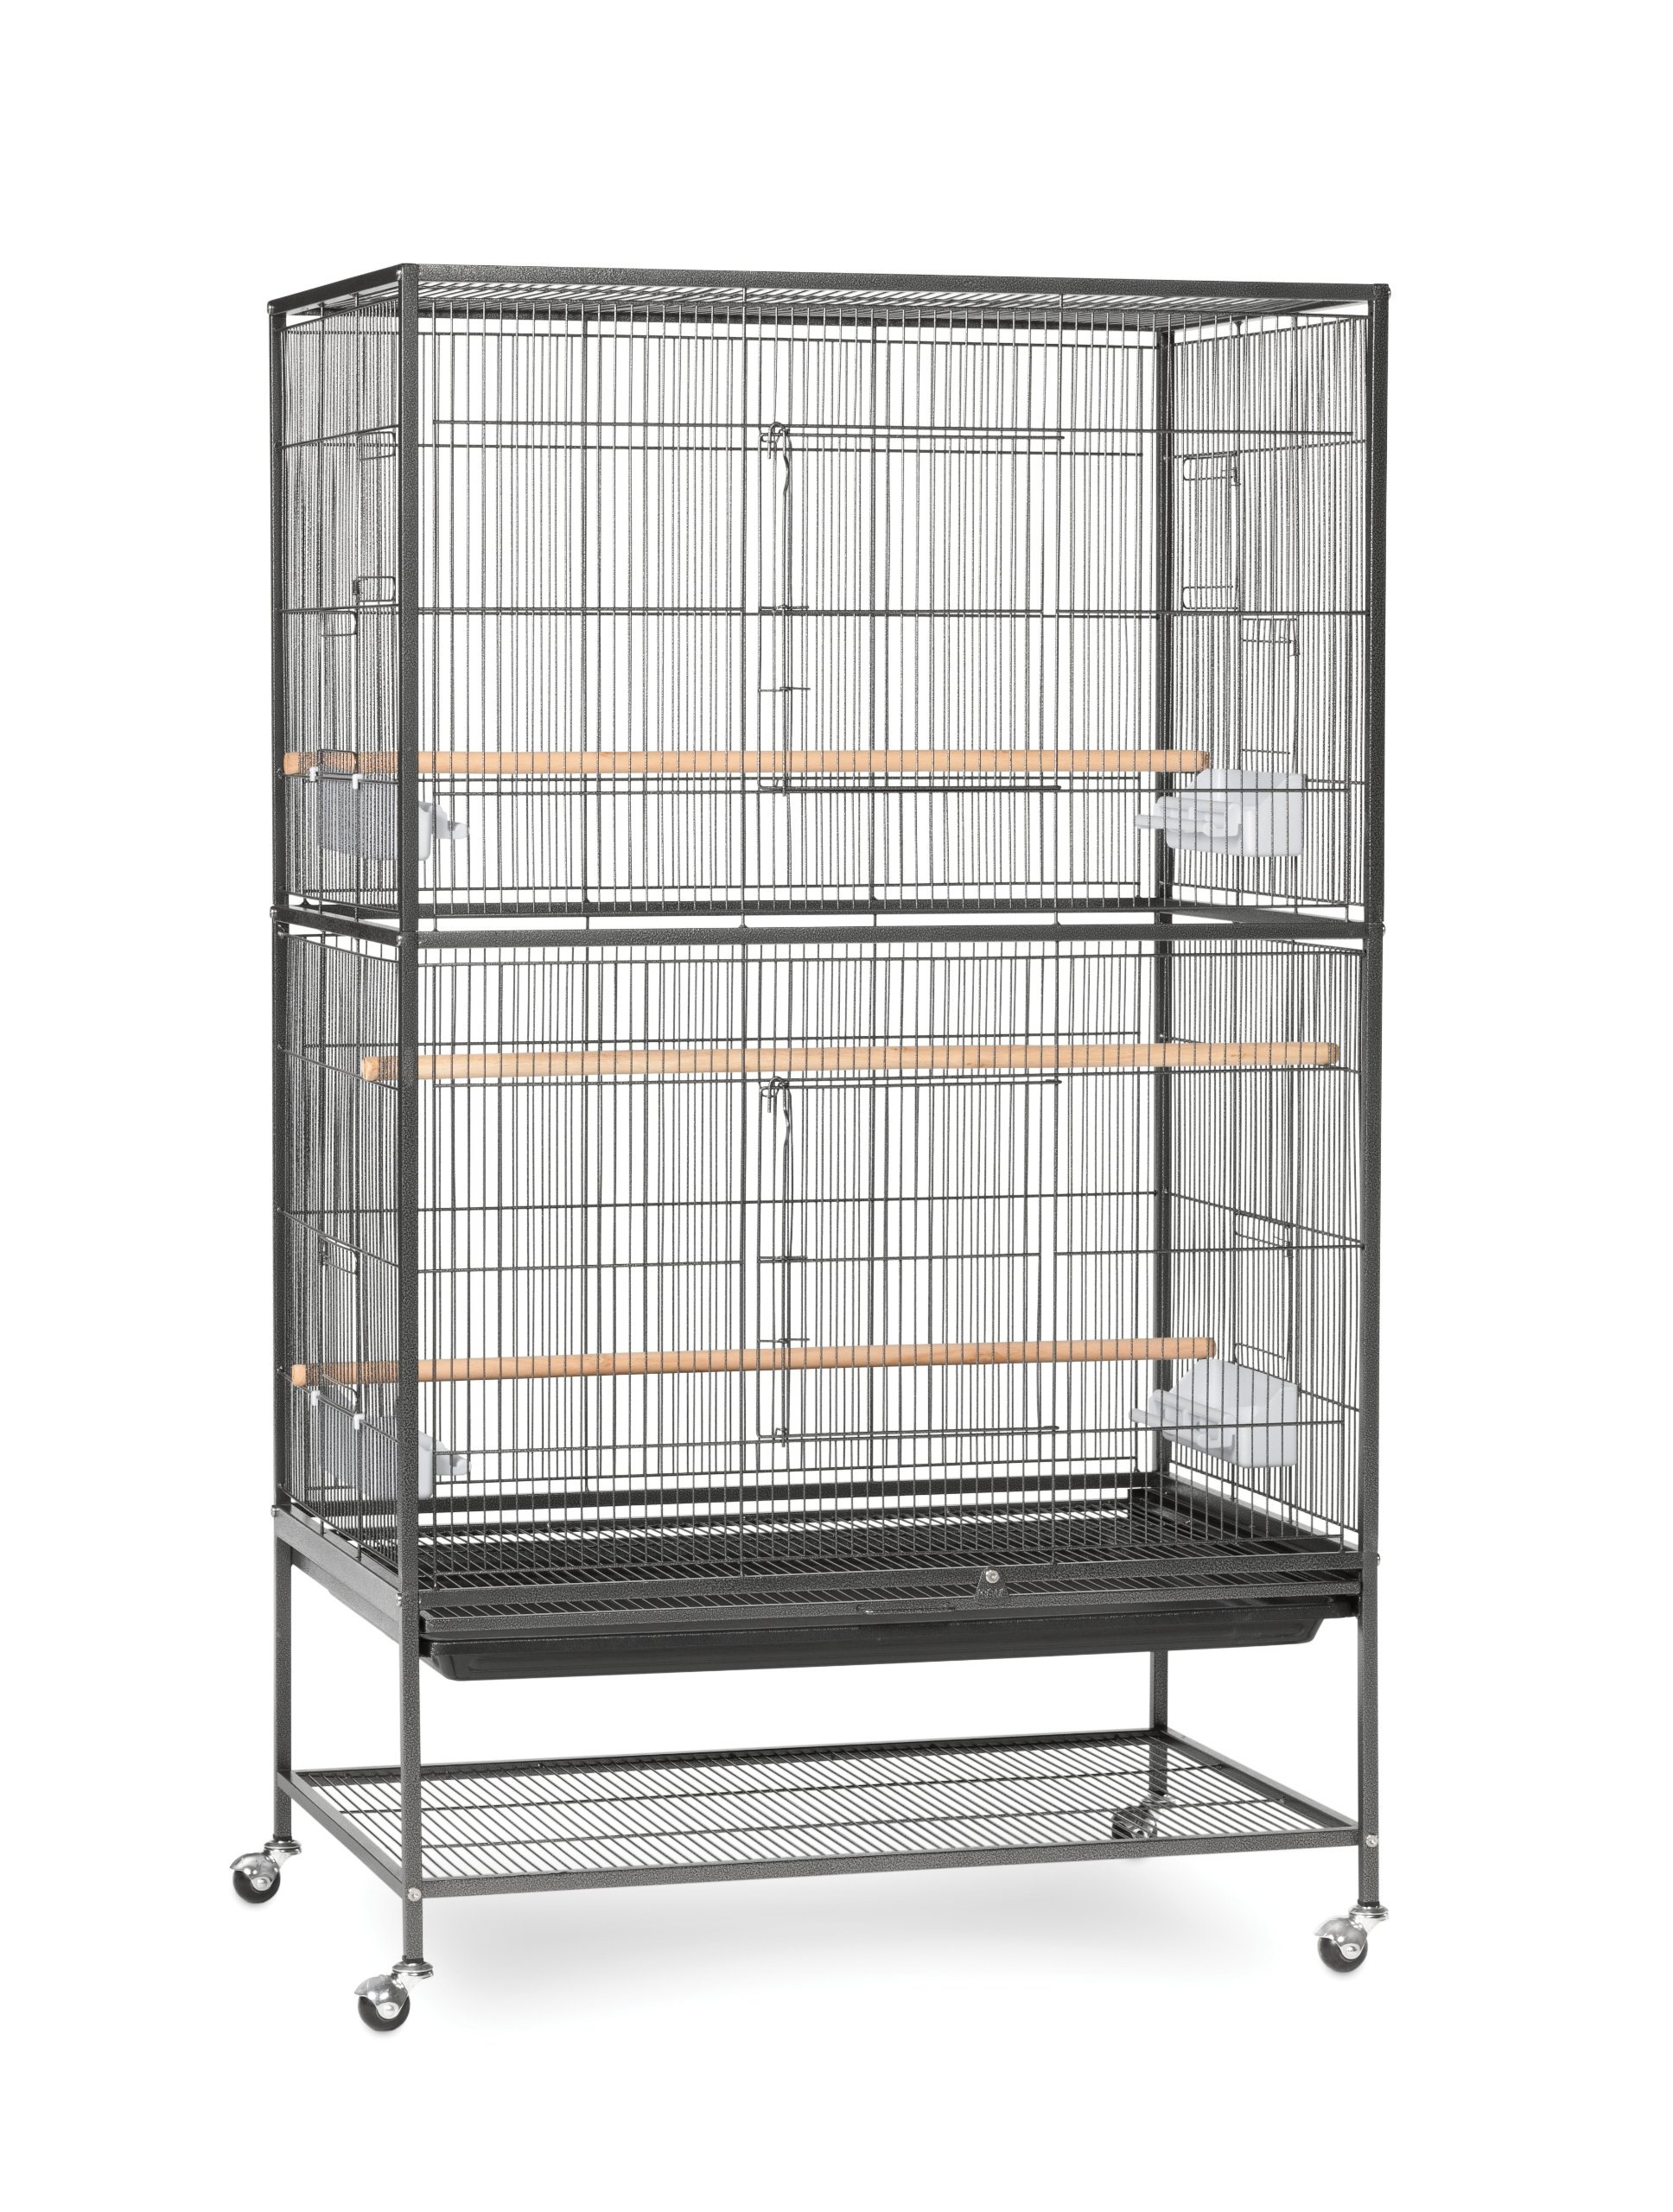 Great Companions Large Bird Cage - Prevue Hendryx Wrought Iron Flight Cage by Prevue Hendryx